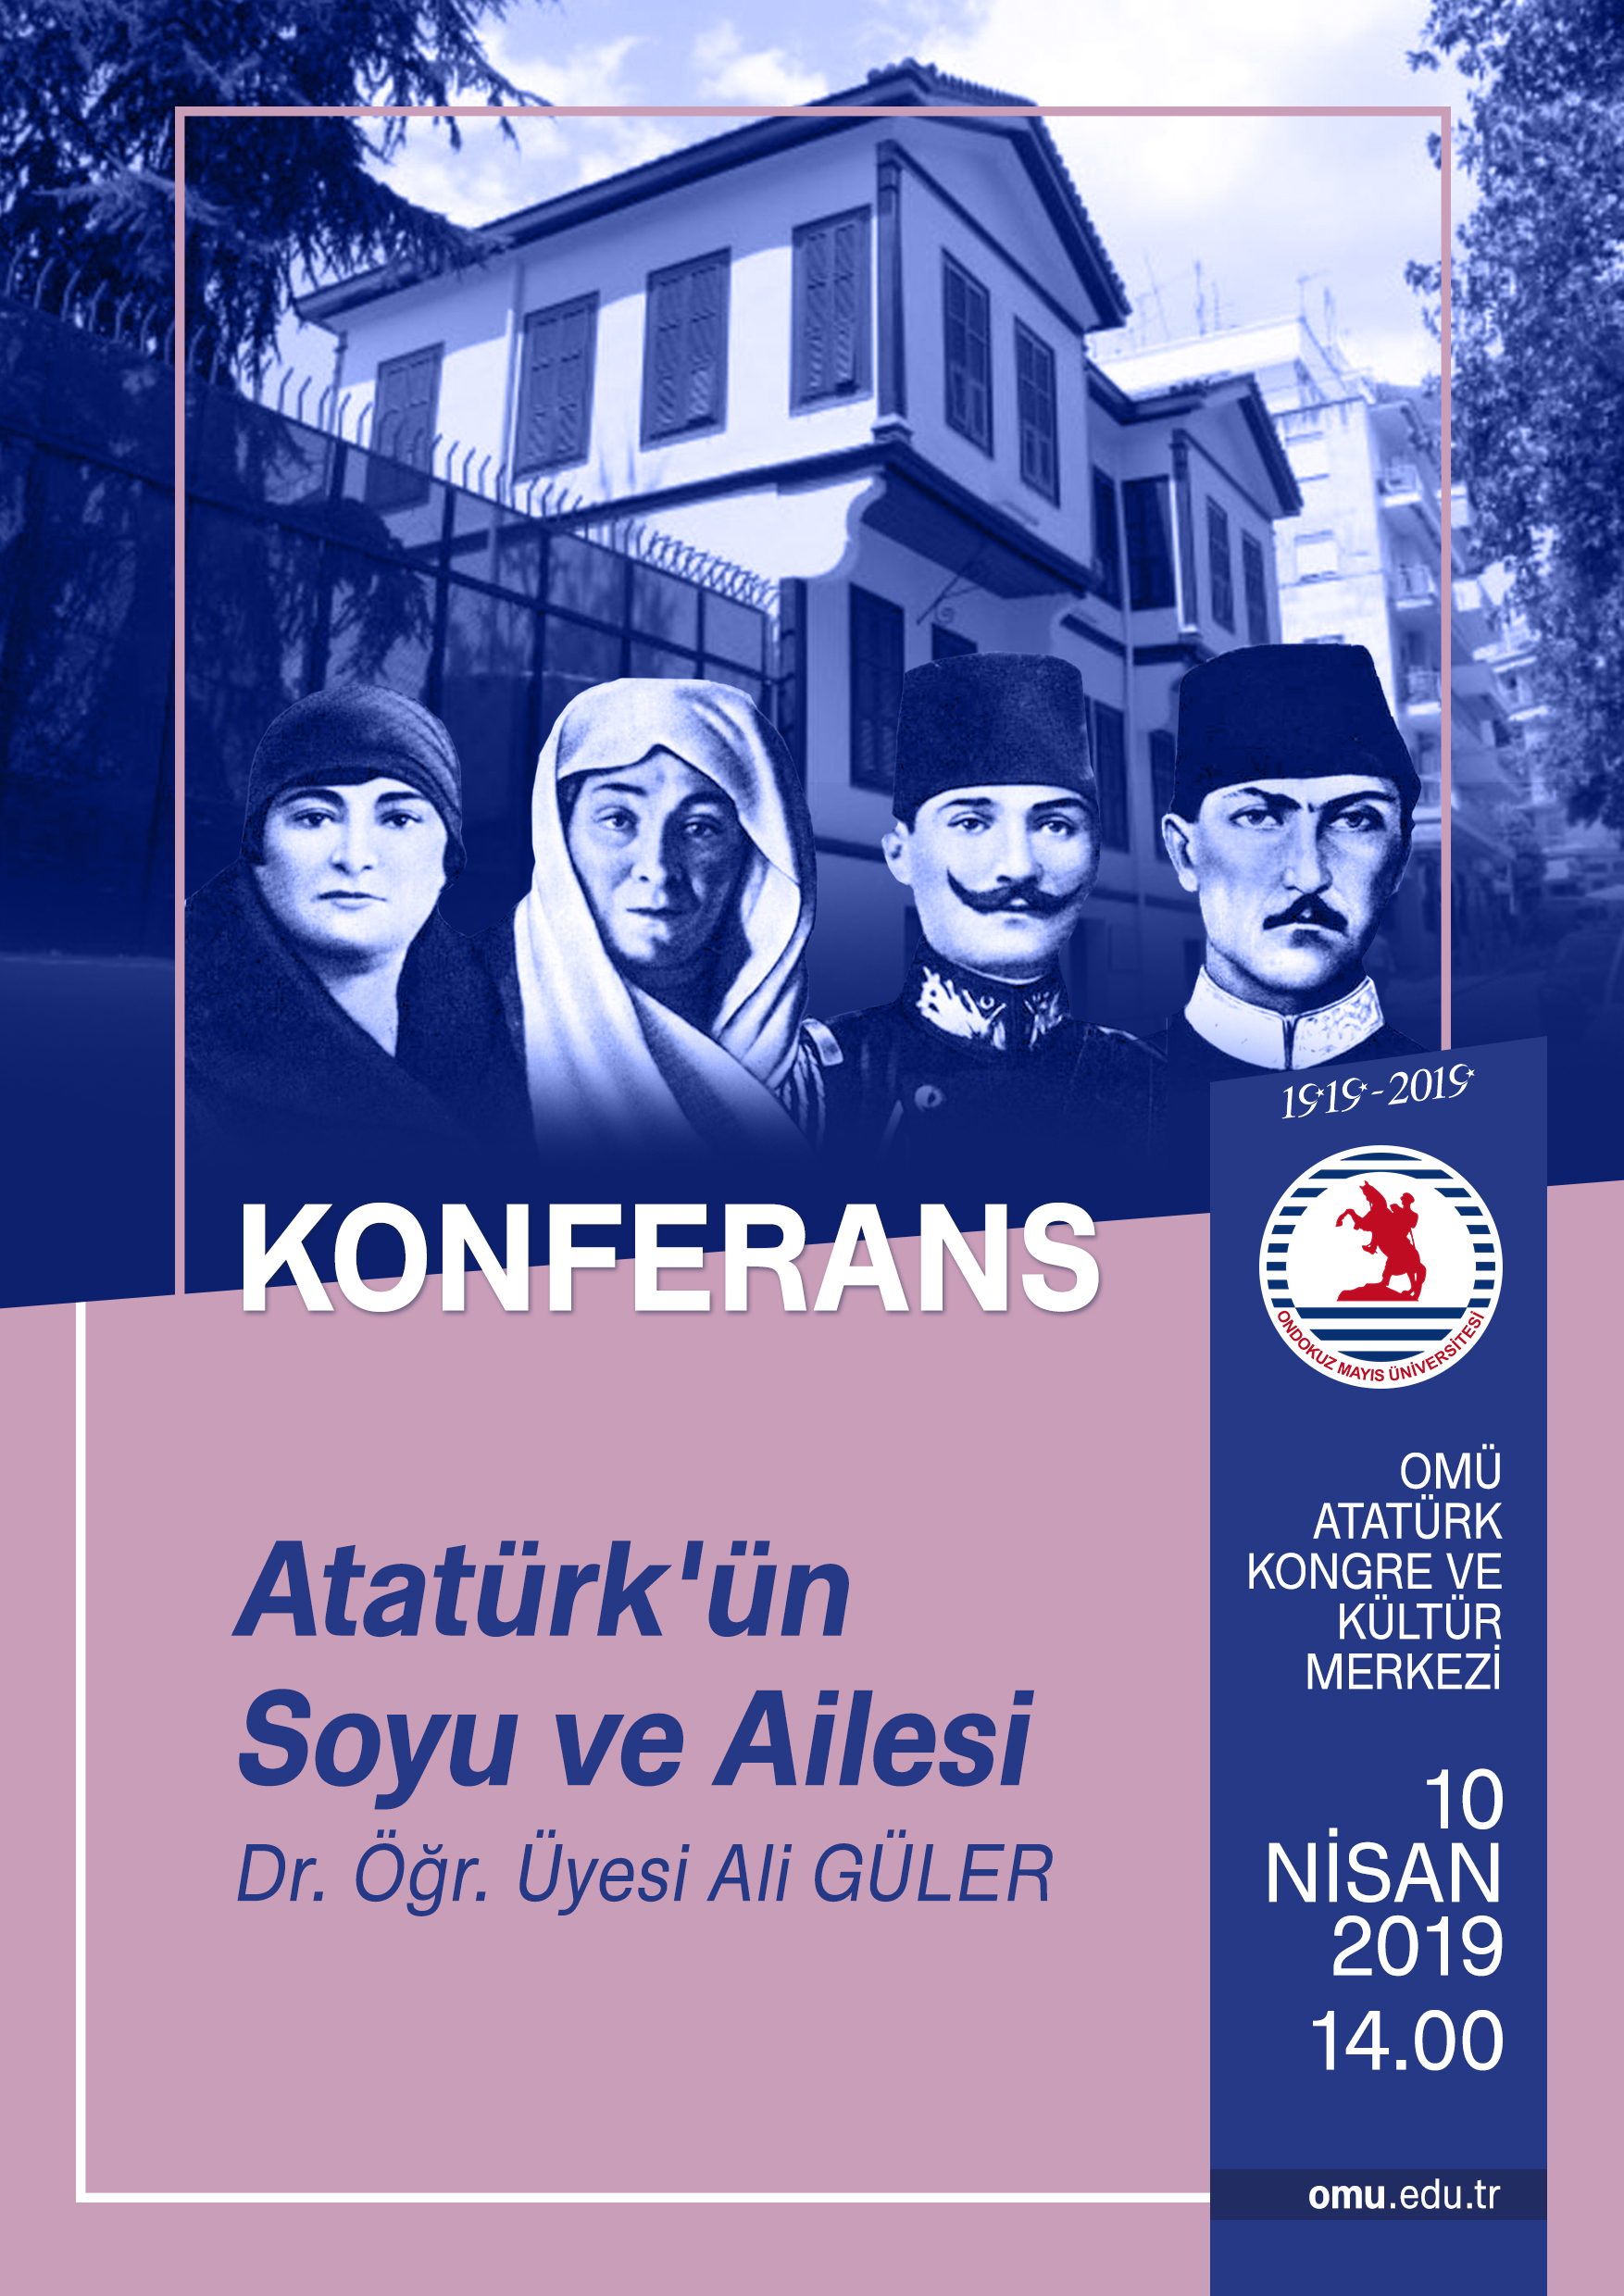 http://www.omu.edu.tr/sites/default/files/ataturkun-soyu-ve-ailesi-konferansi-dr.ali-guler.jpg